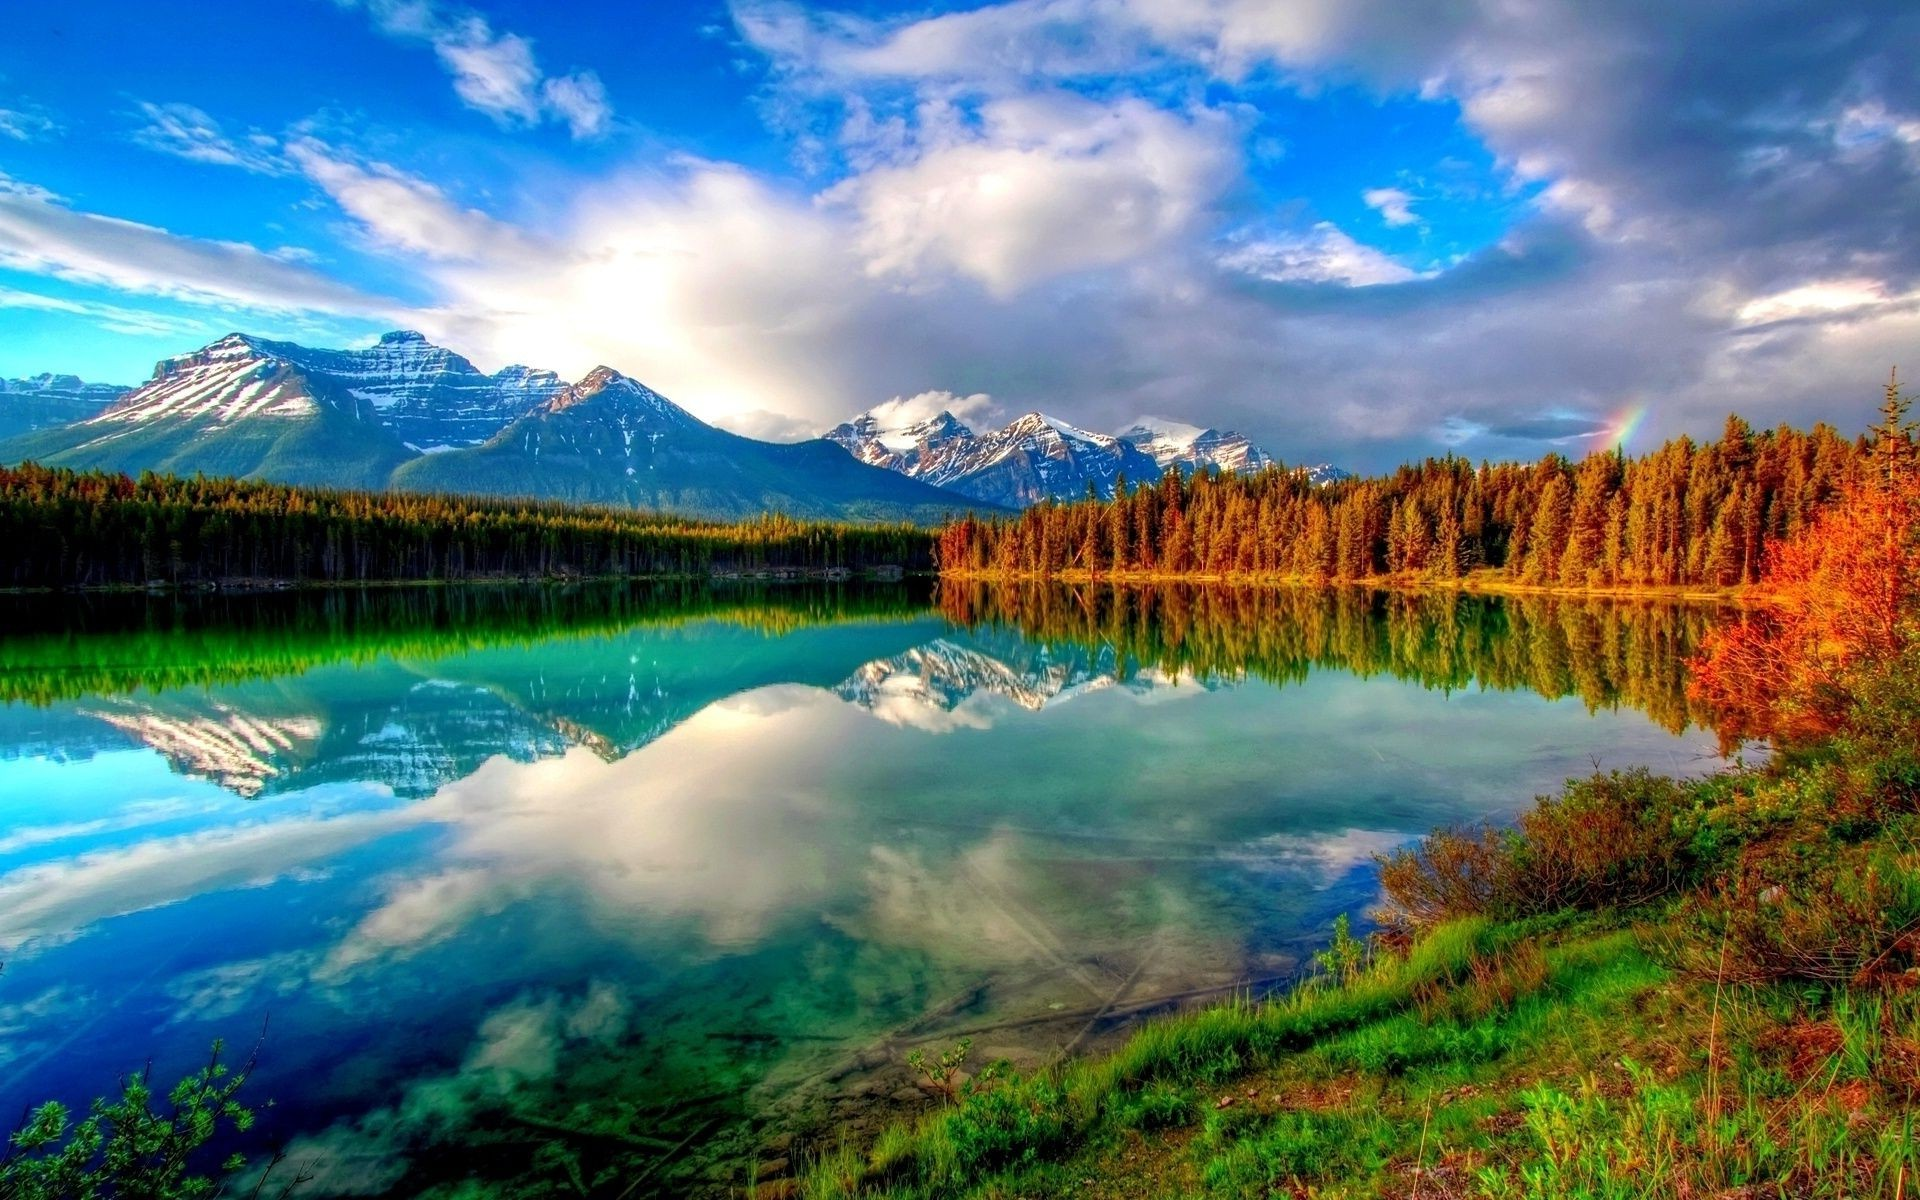 lake water reflection landscape nature dawn outdoors wood sky travel mountain scenic fall sunset river snow tree